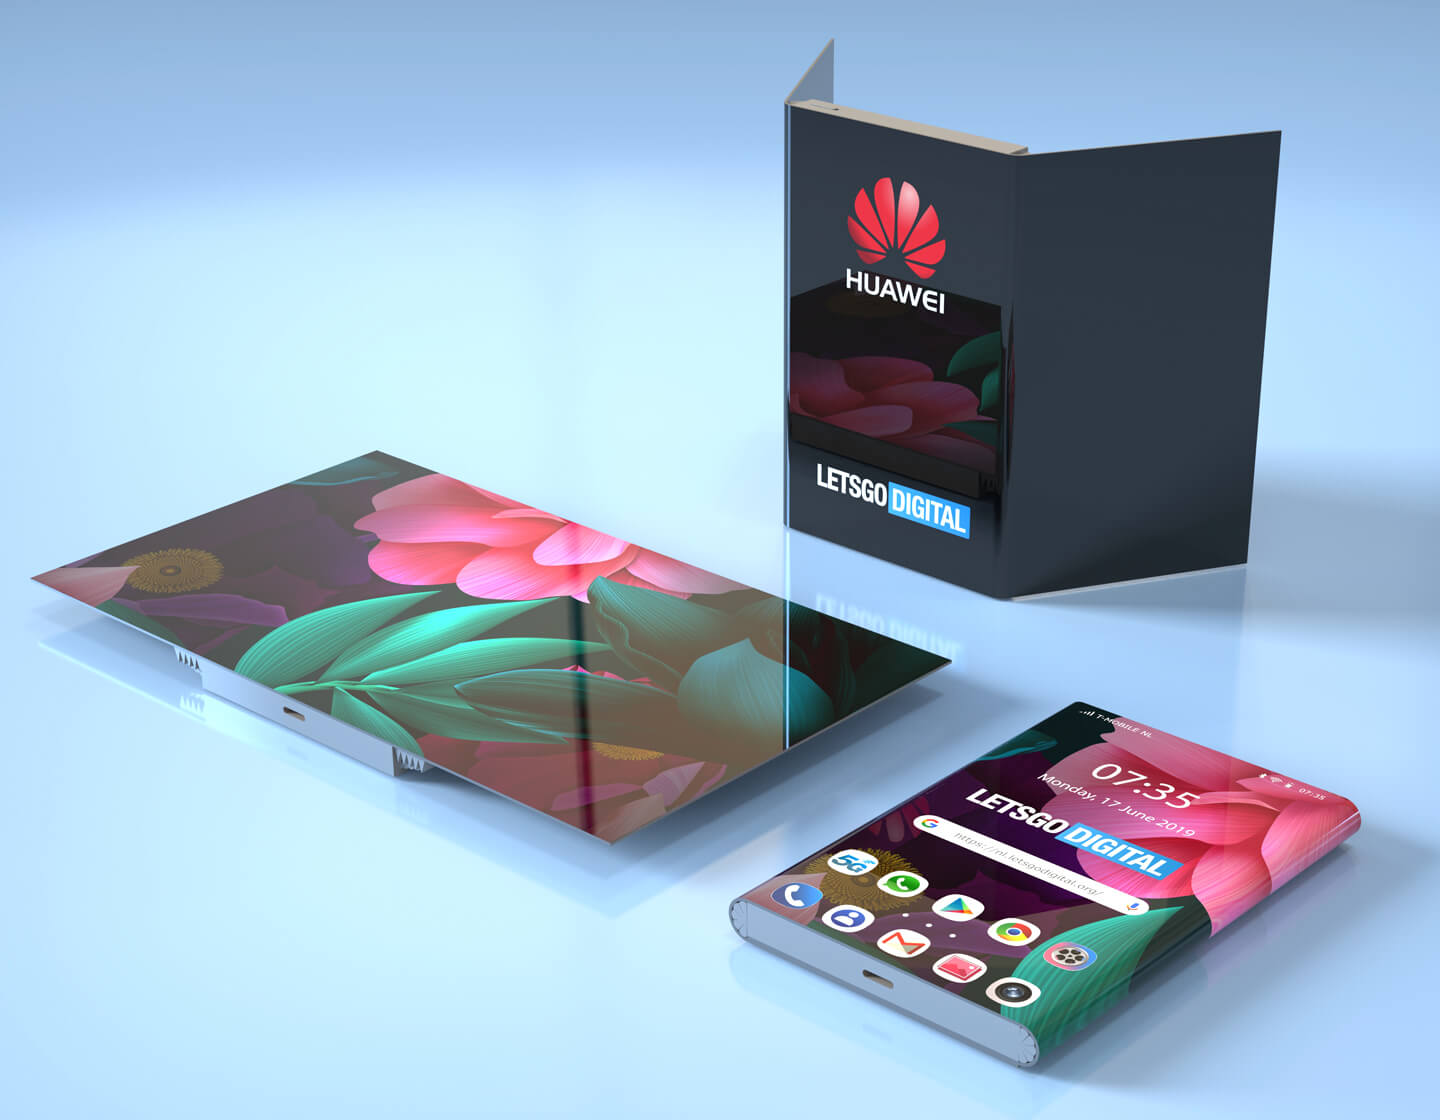 Samsung Galaxy Fold is now ready for launch: Samsung Display exec